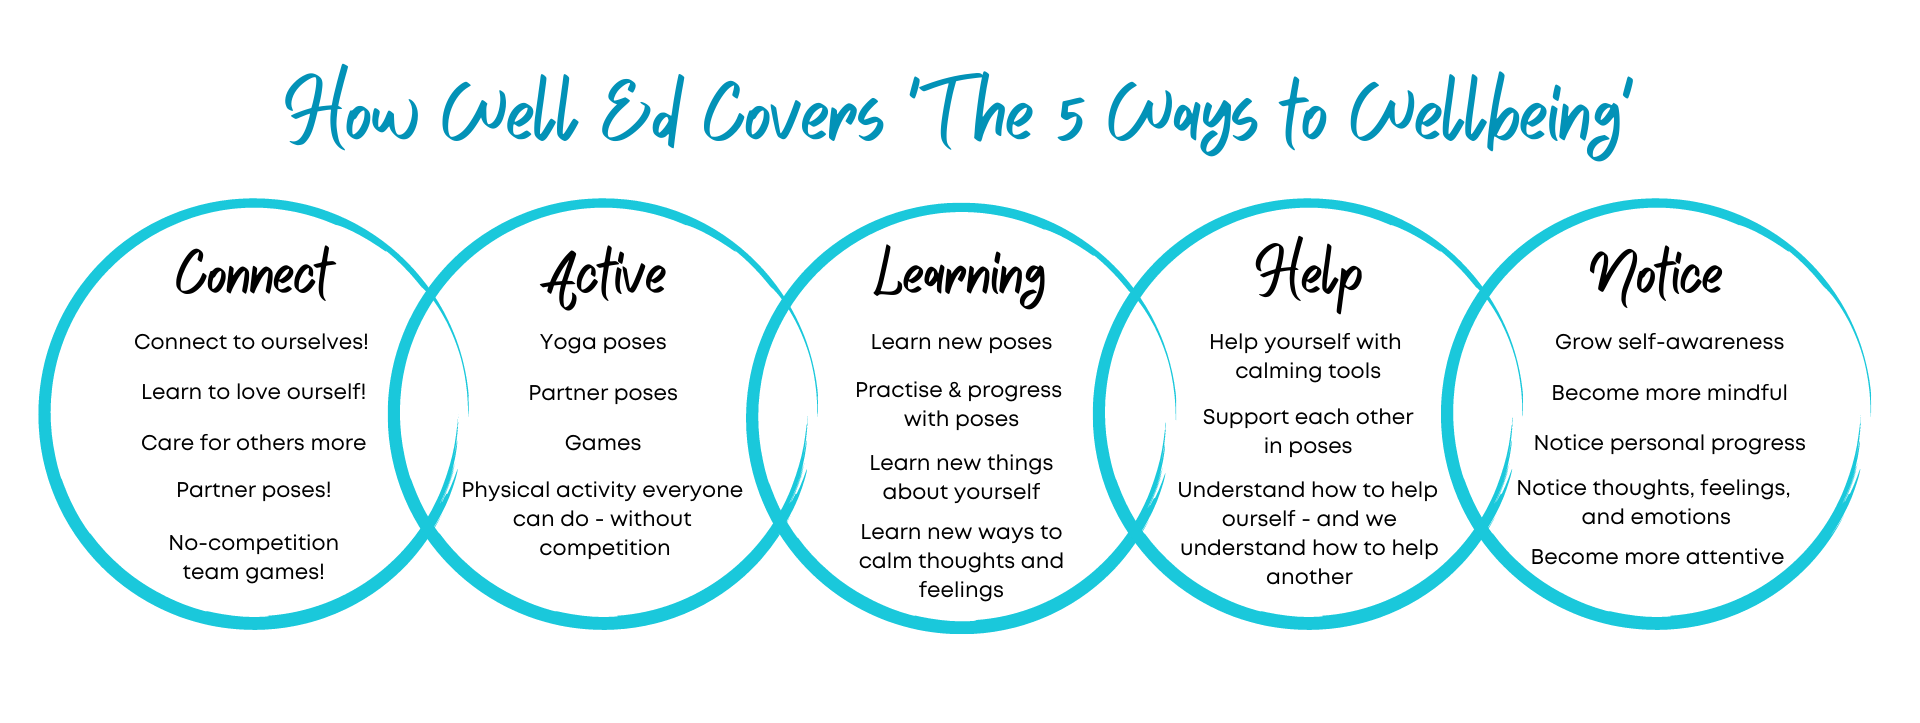 How Well Ed covers The 5 ways to Wellbeing: Connect, Active, Learning, Help and Notice